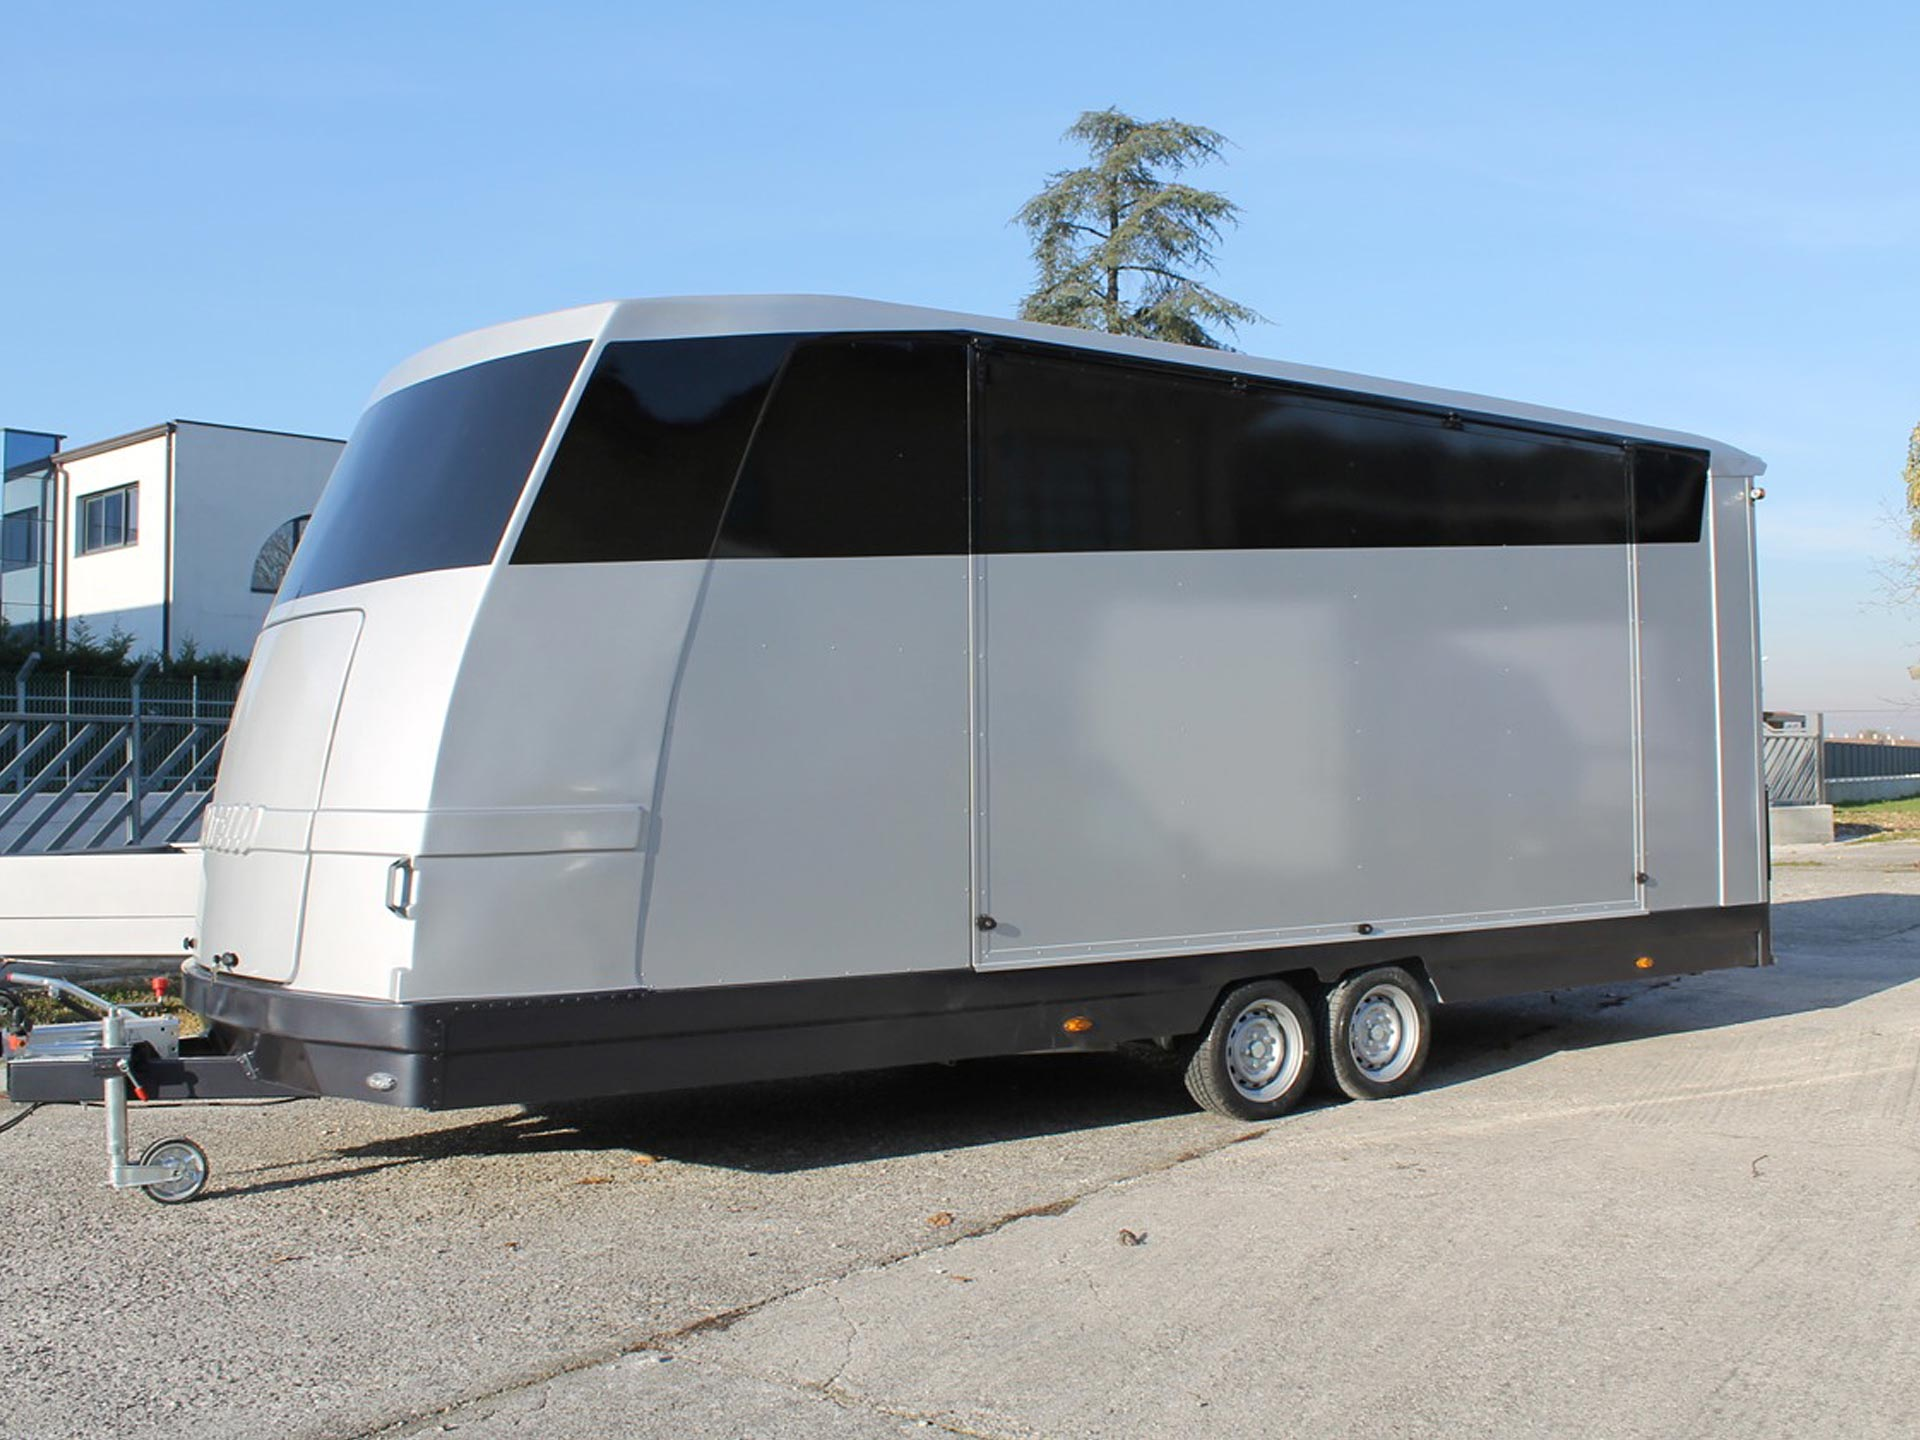 Turatello F35 2 Cars Autotransporter für 2 Autos